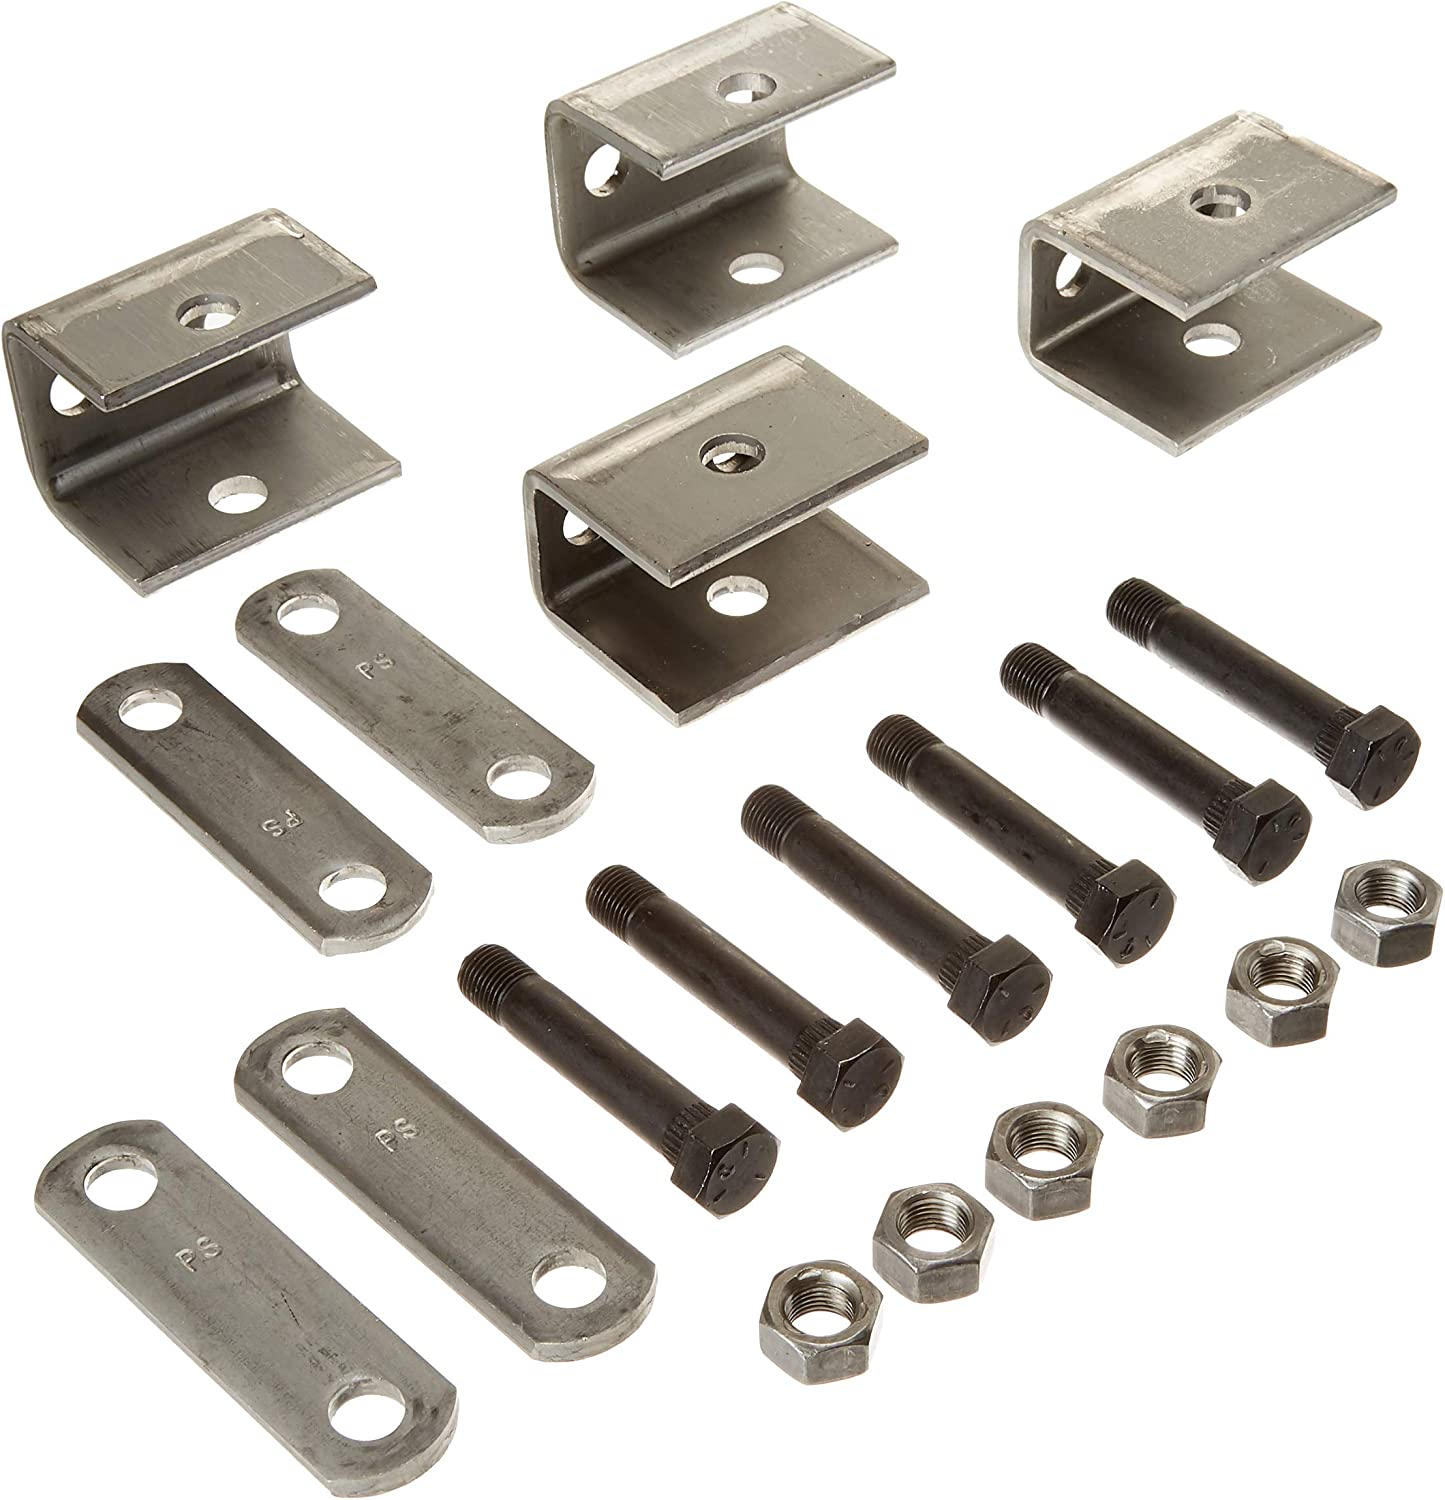 Rockwell American Single Axle Spring Hanger Kit /& U-Bolt Kit for 3,500lb Trailer Axle